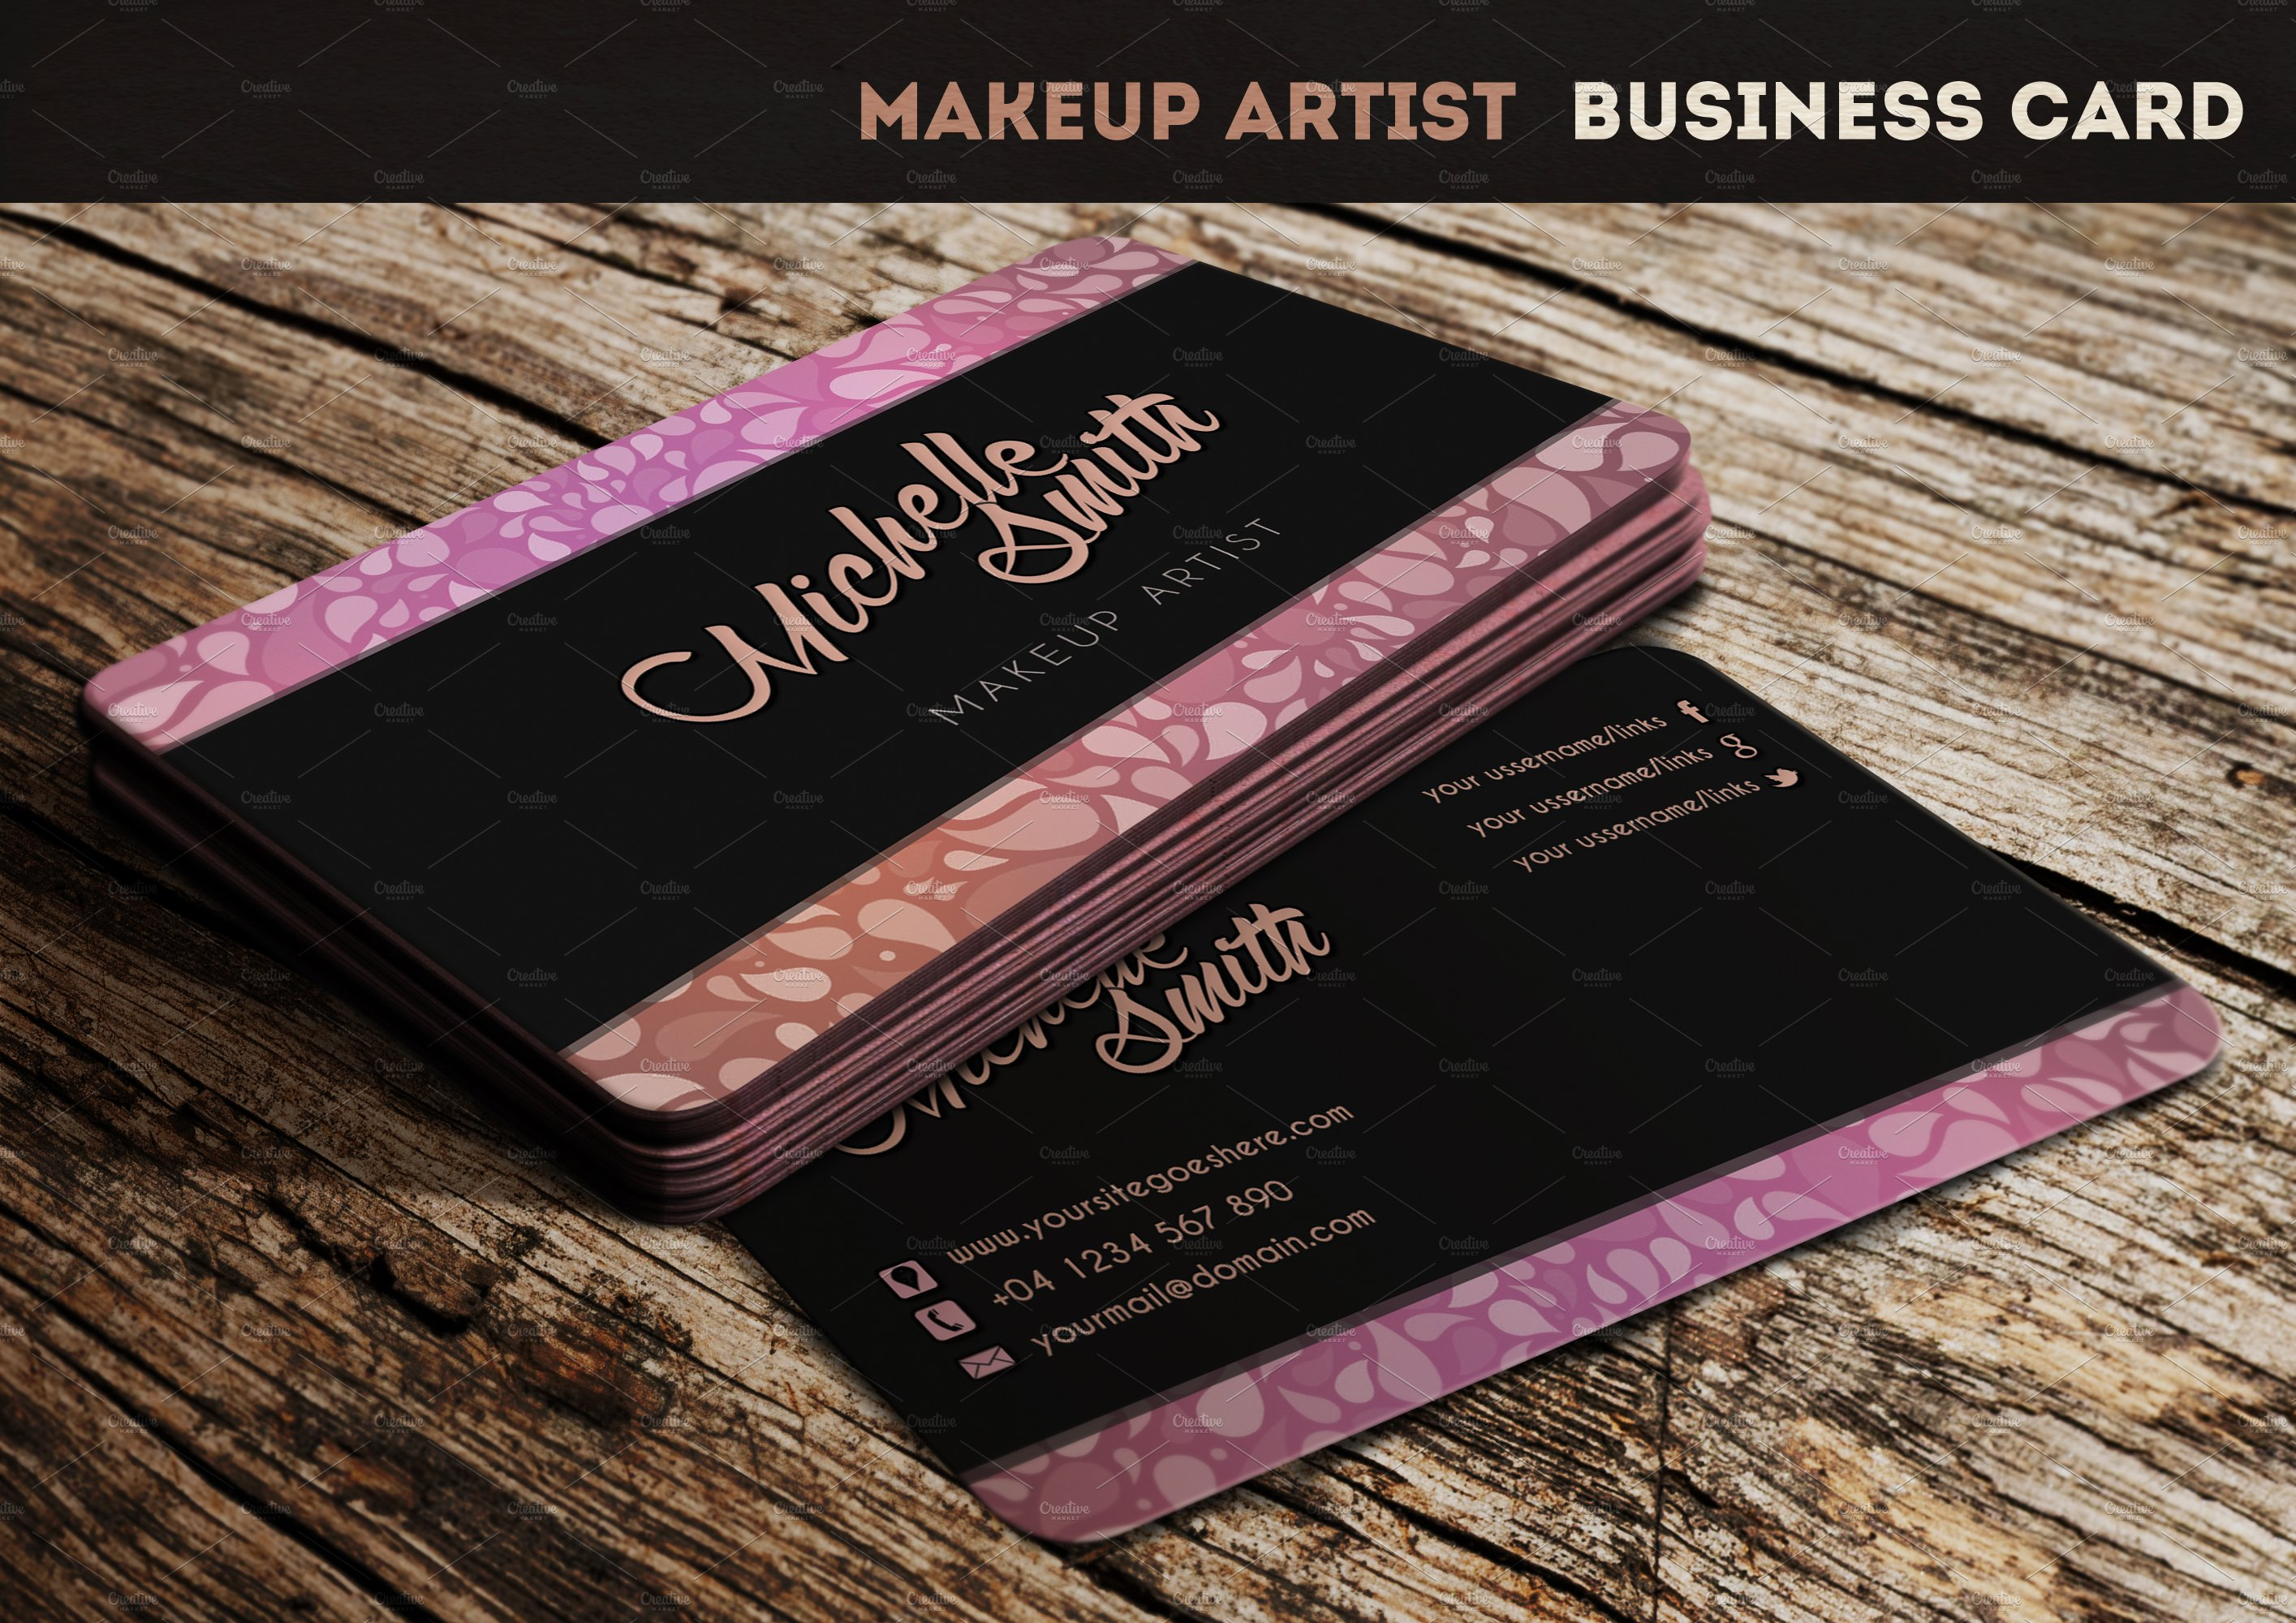 Makeup artist business card business card templates creative market colourmoves